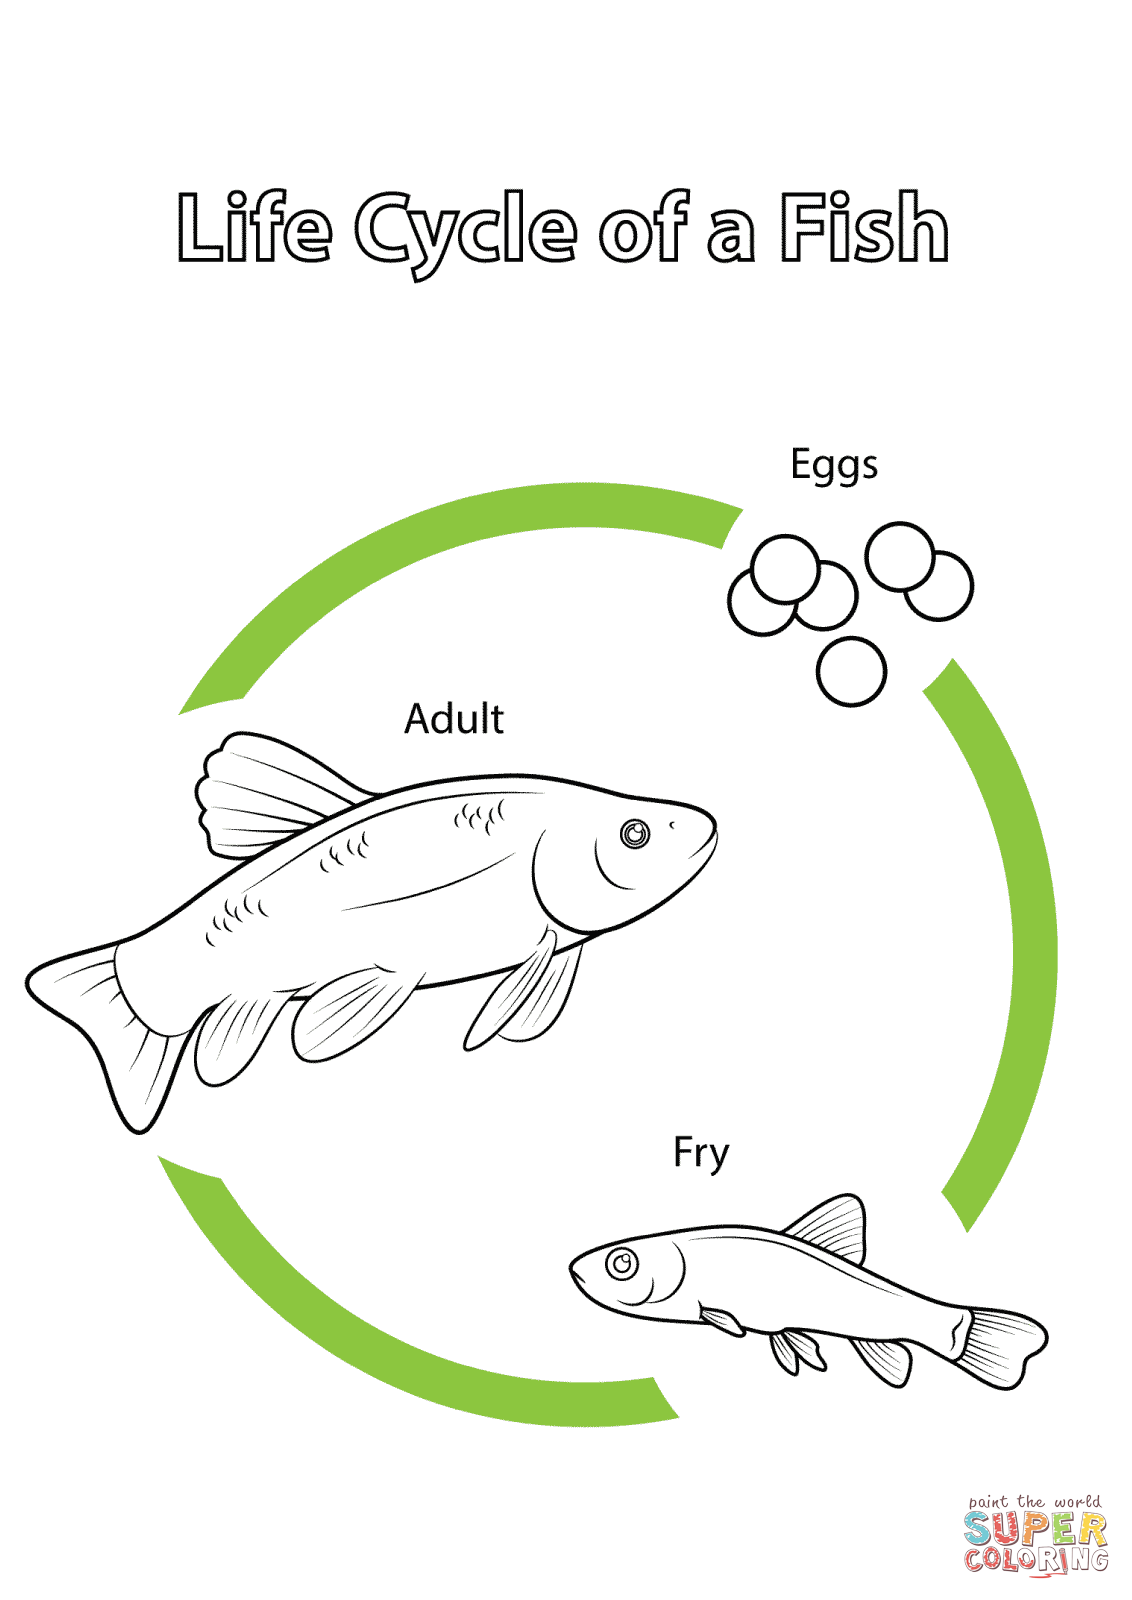 life cycle of a fish super coloring science pinterest cycling montessori and abc activities. Black Bedroom Furniture Sets. Home Design Ideas